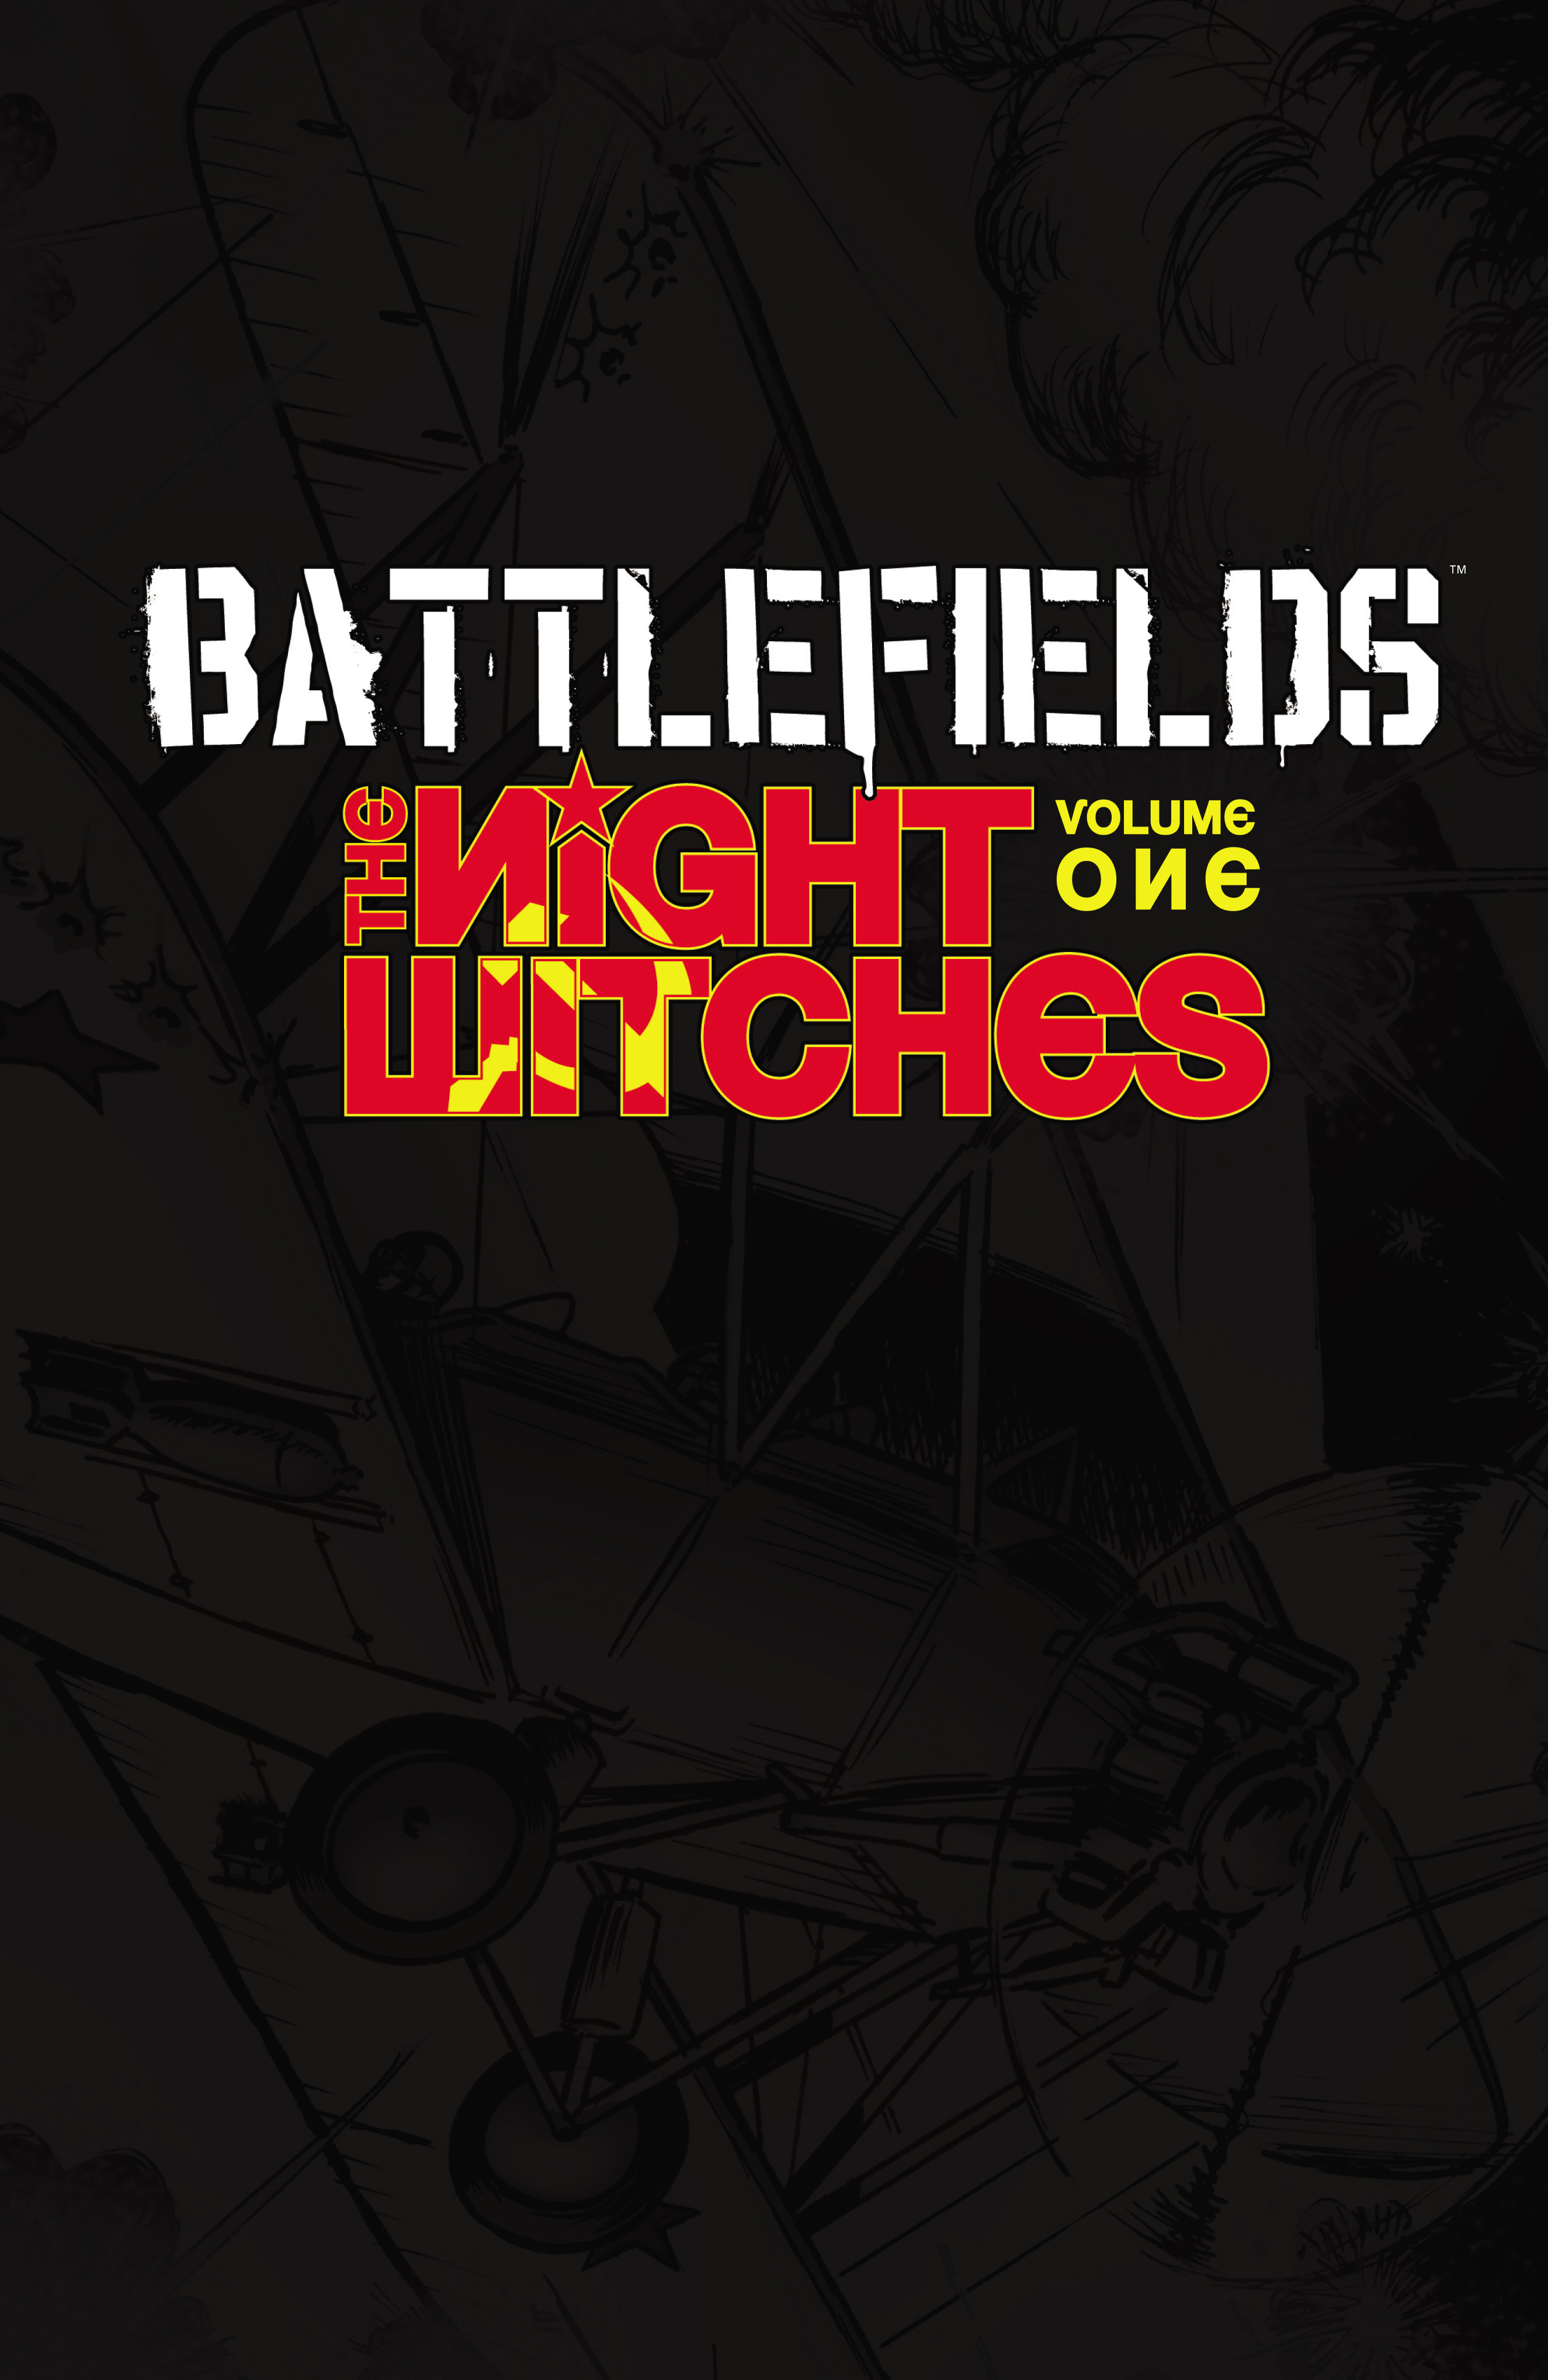 Read online Battlefields: Night Witches comic -  Issue # TPB - 2